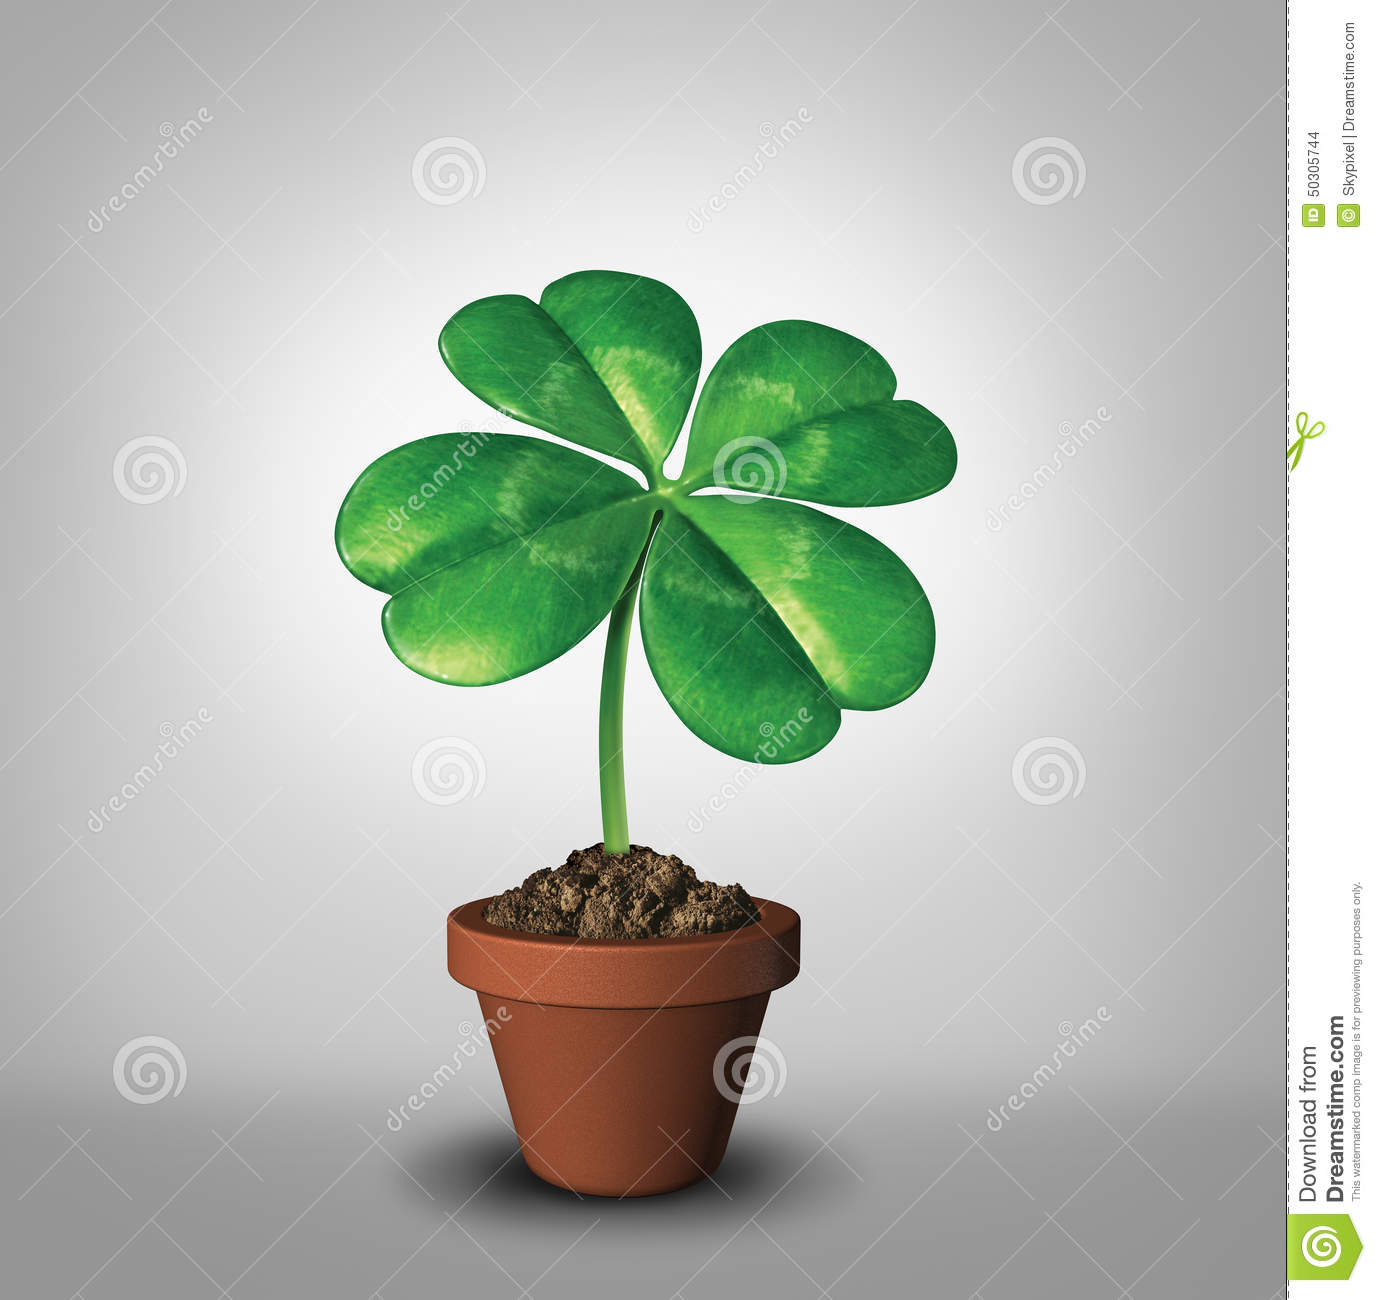 growing your luck stock illustration image 50305744 pot leaf vector free download pot leaf vector art